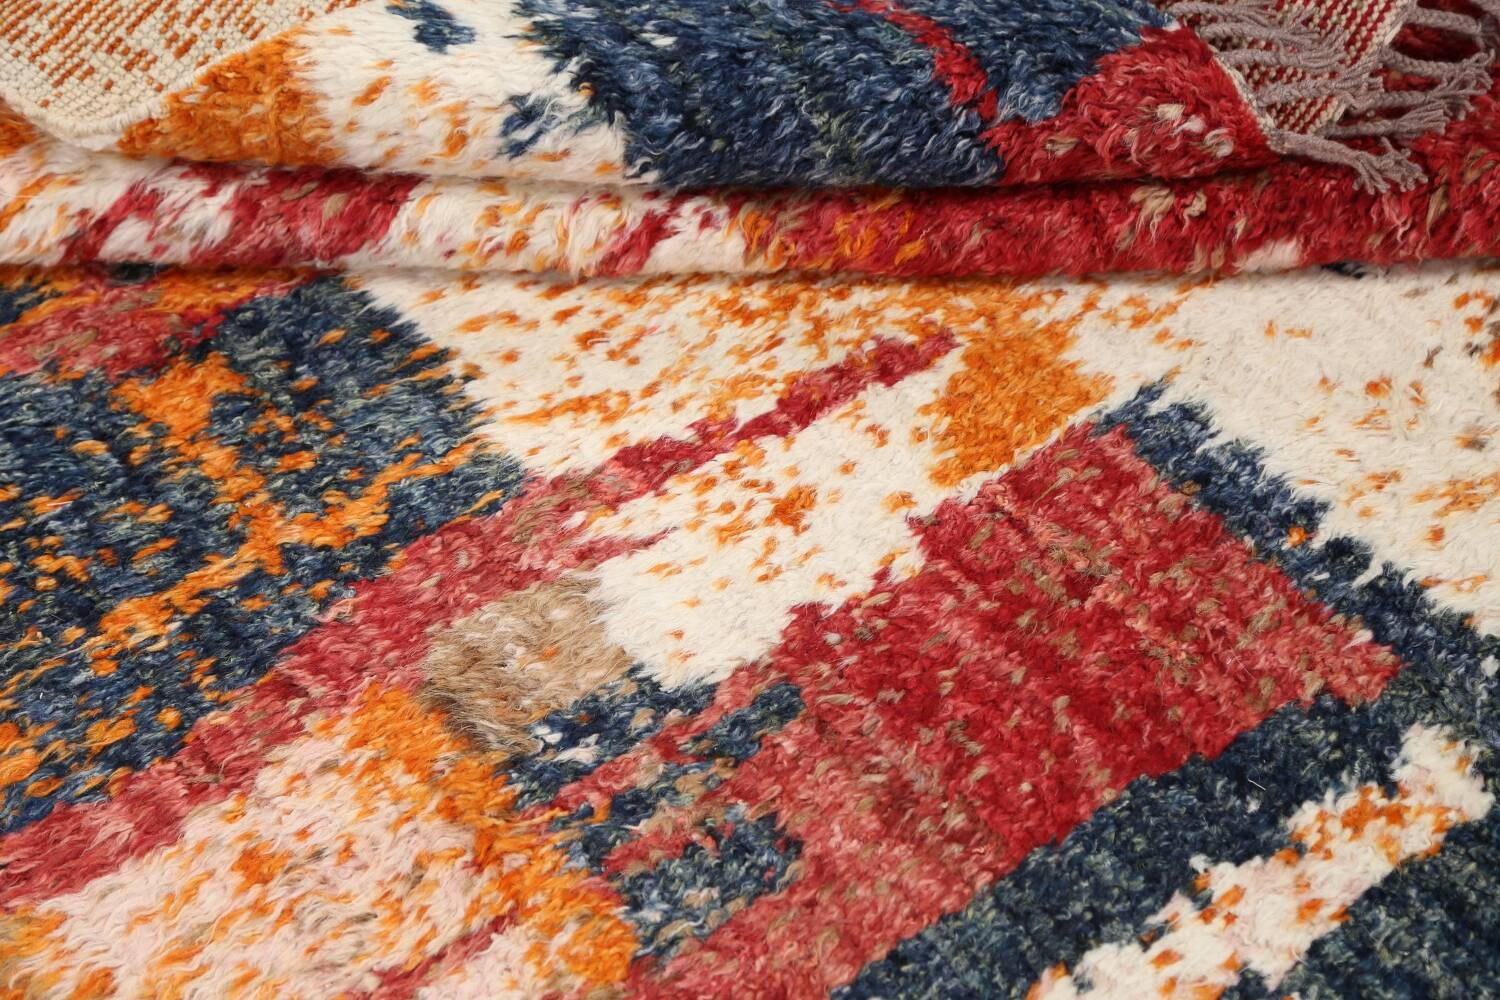 Abstract Moroccan Oriental Area Rug 5x6 image 14